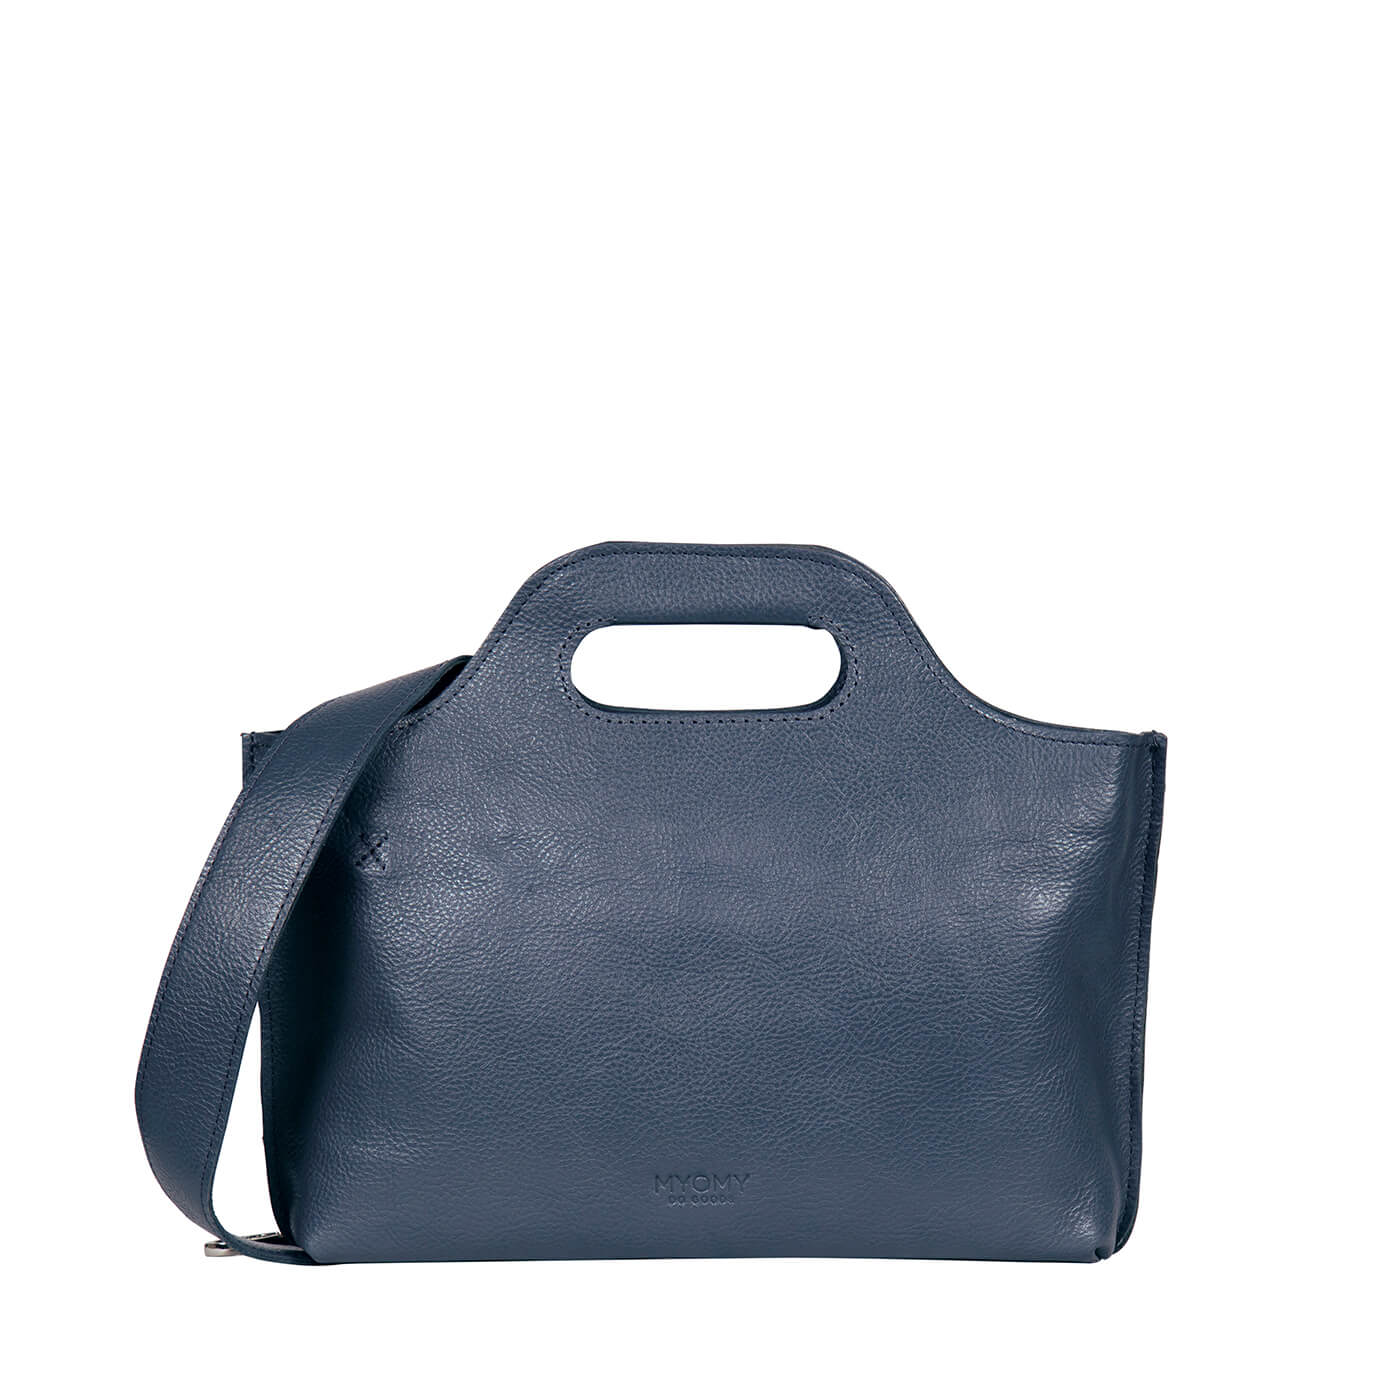 [PRE-ORDER] MY CARRY BAG Mini – seville denim blue